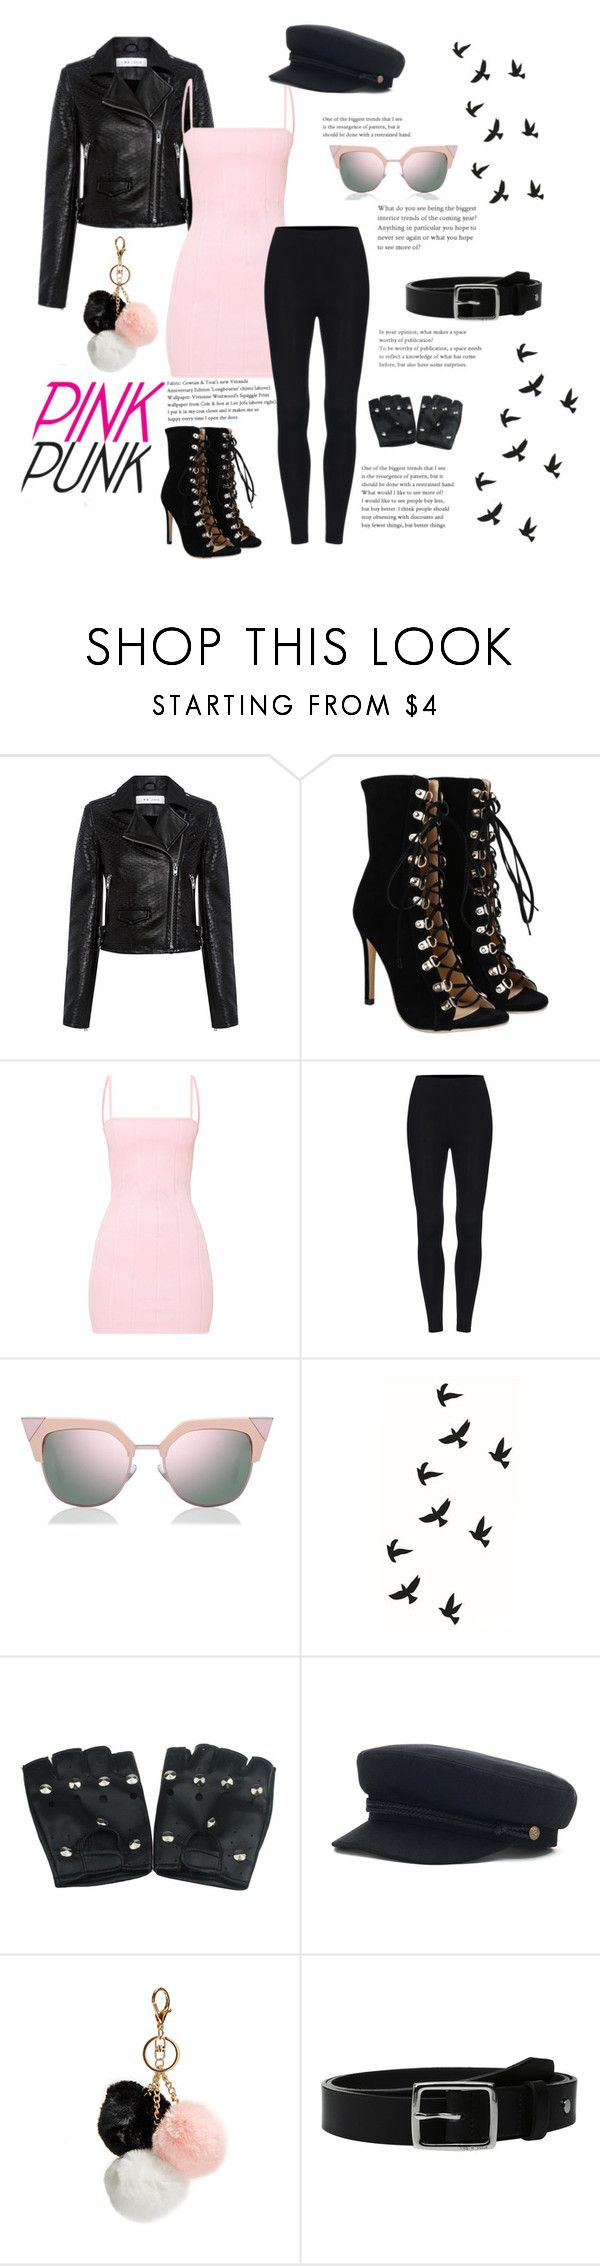 Castle For Sale At The Madison Club Avi Youtube -  rebel yell billy idiol by foxxyslang liked on polyvore featuring iro